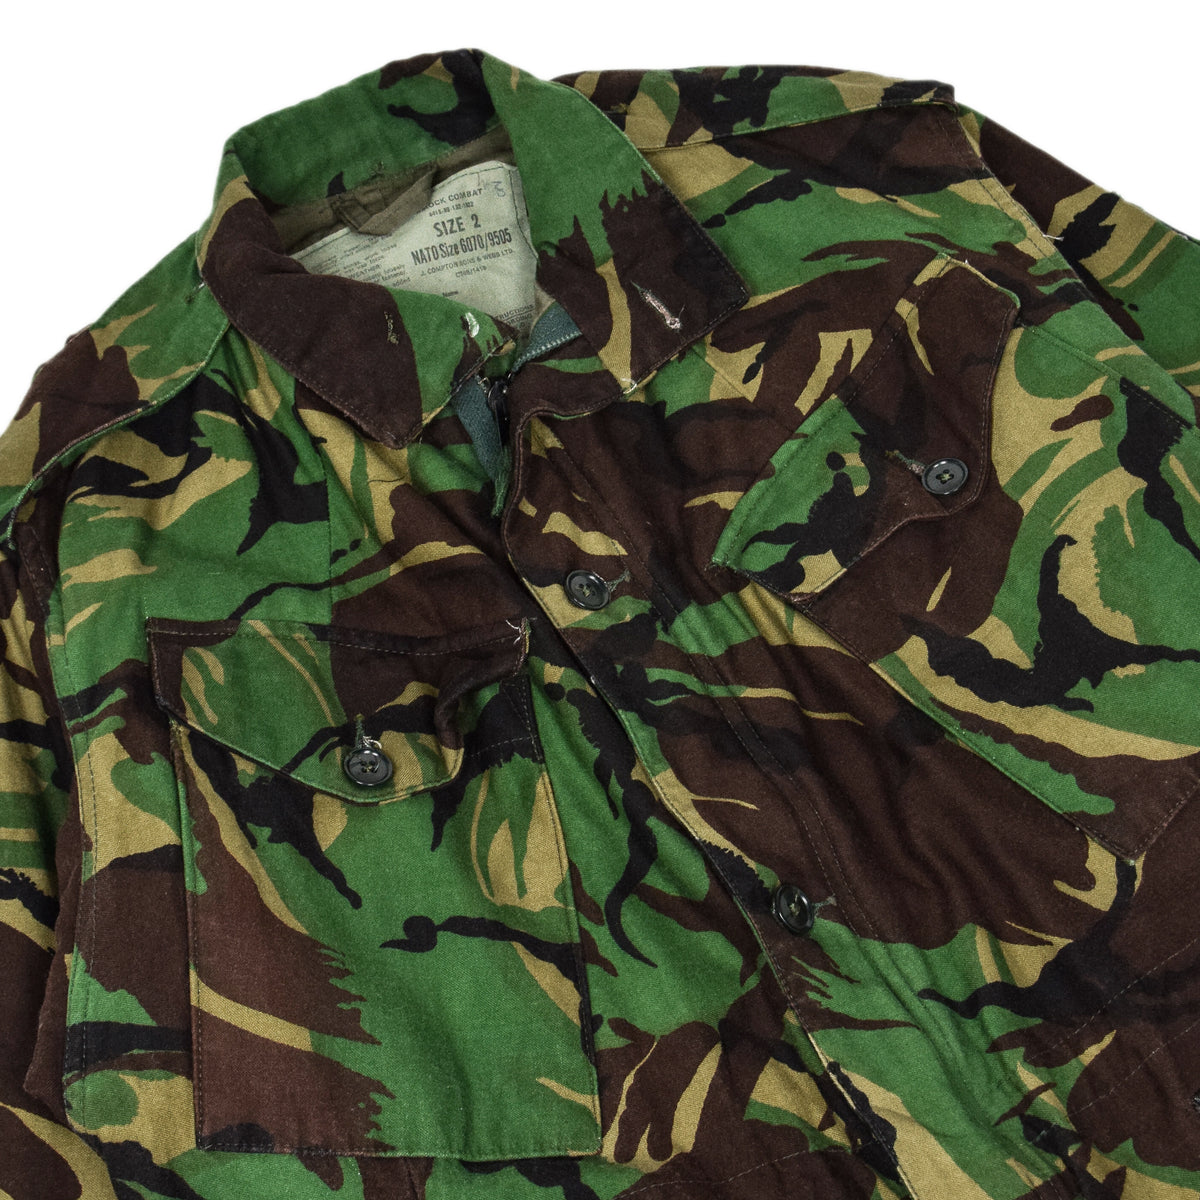 Vintage 80s British Army Combat Smock Woodland DPM Camo Jacket M chest